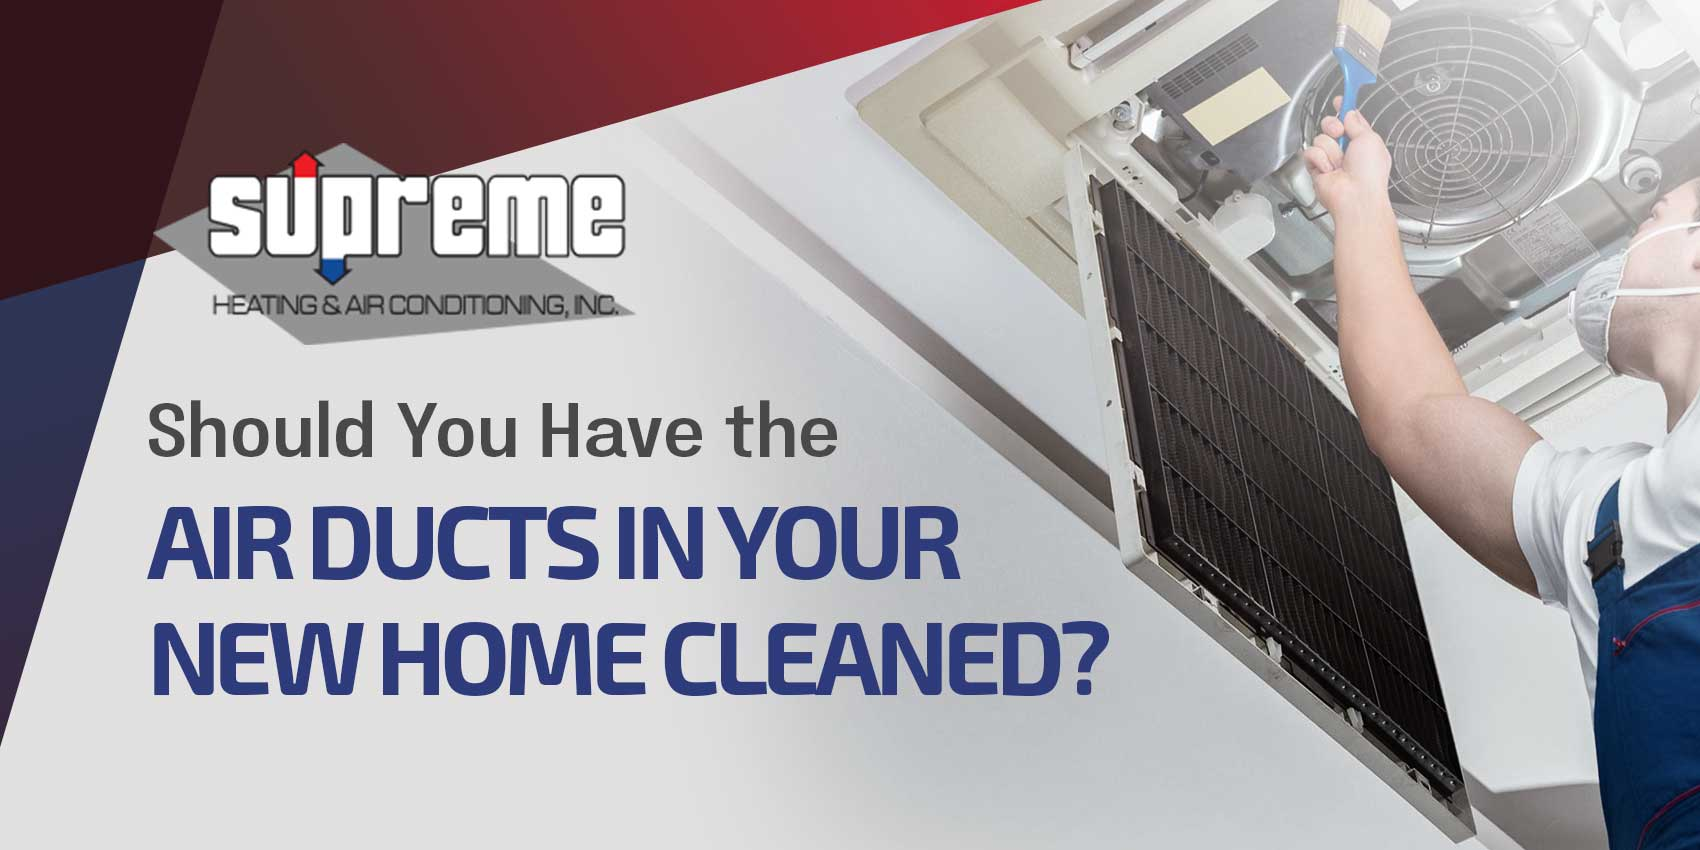 Should You Have the Air Ducts in Your New Home Cleaned?